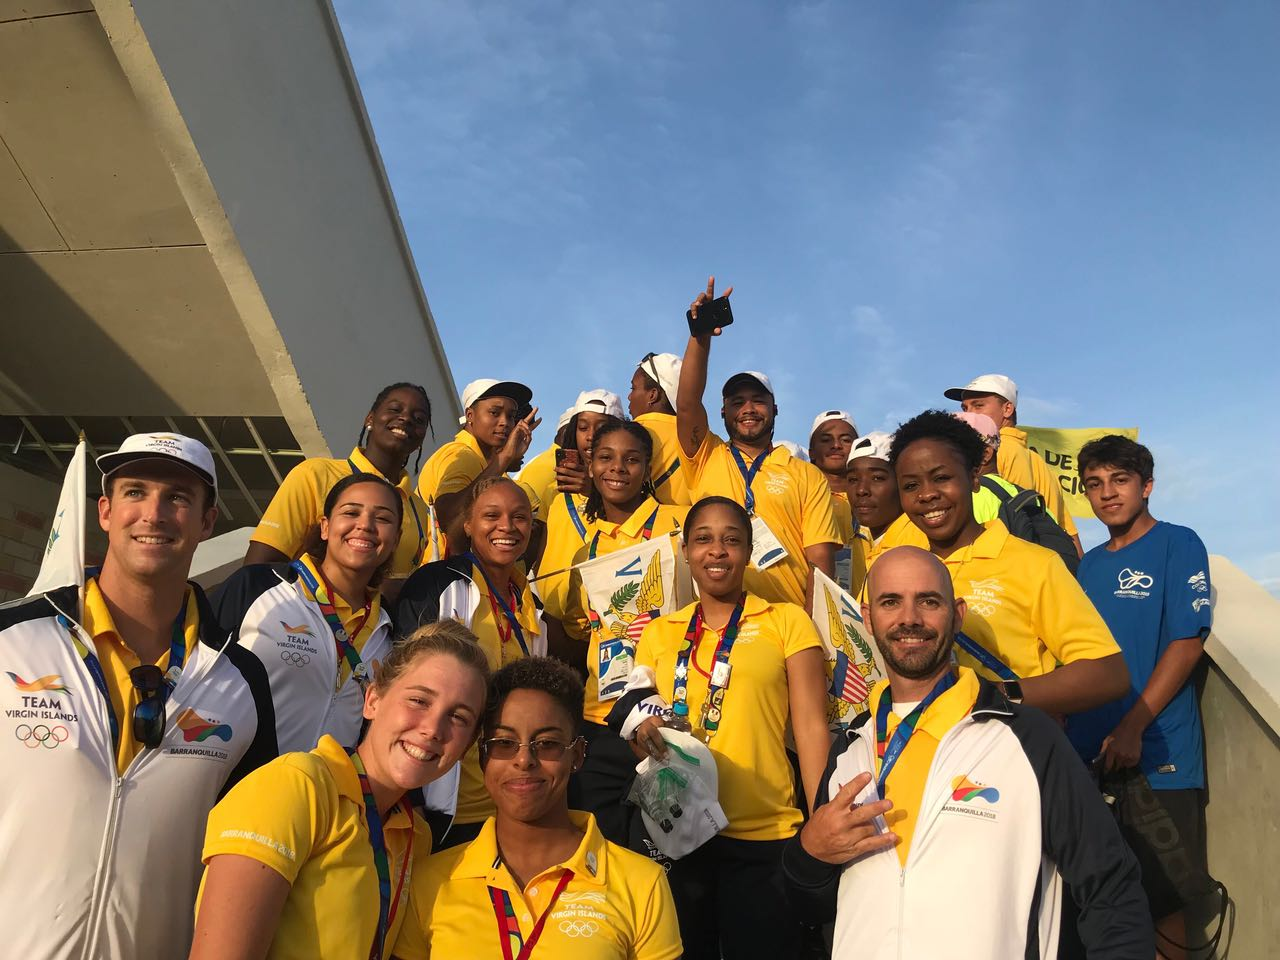 Read more about the article Delegation of Virgin Islands Athletes set to compete in 2018 Central American and Caribbean Games